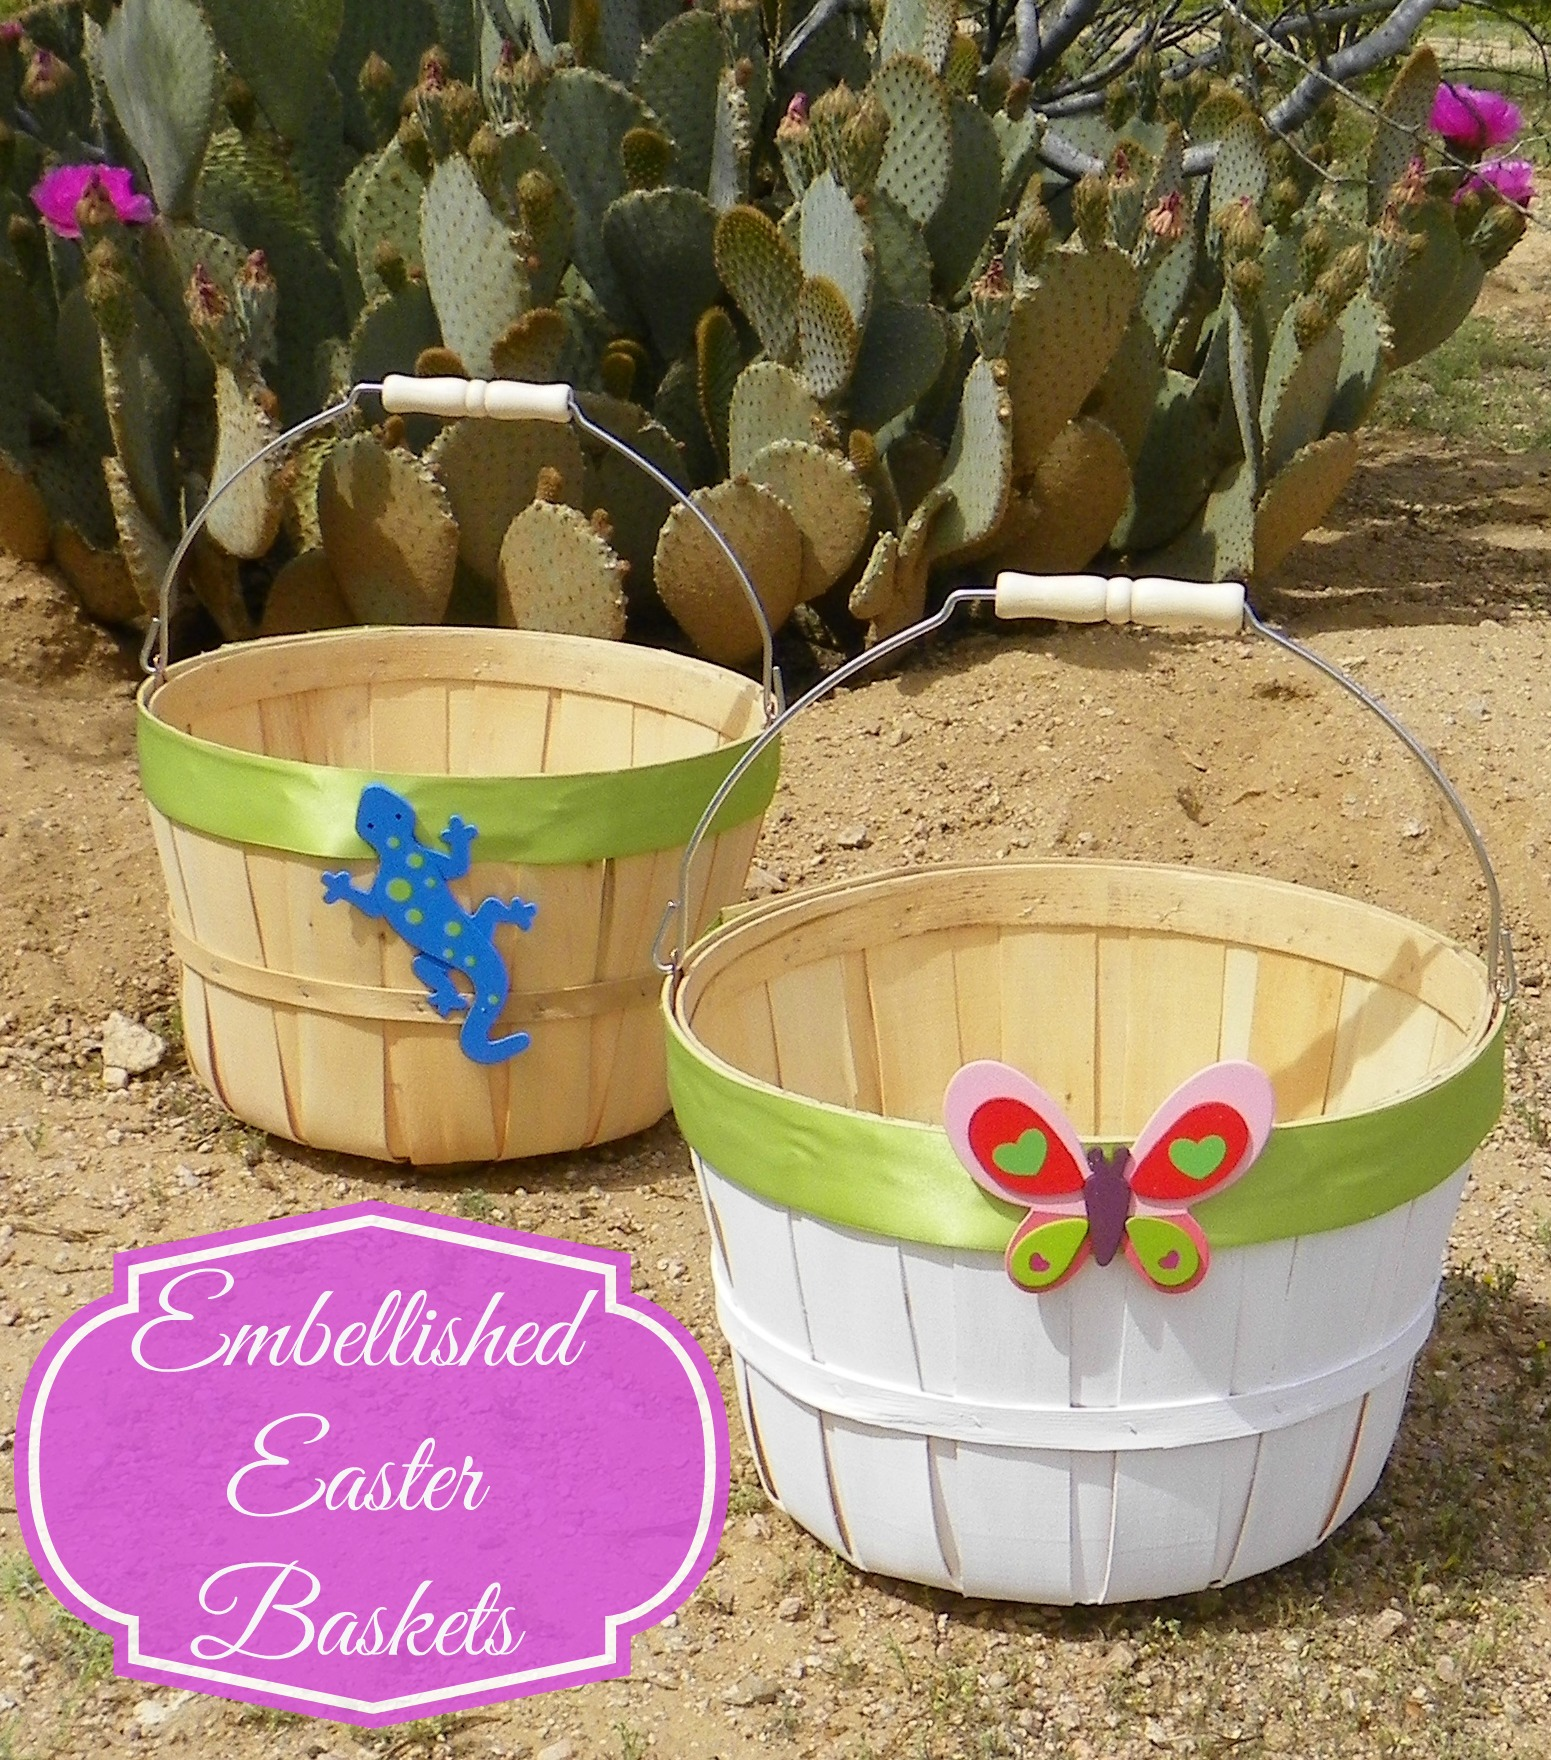 Easy embellished easter baskets affordable and personalized how to embellish simple easter baskets negle Choice Image